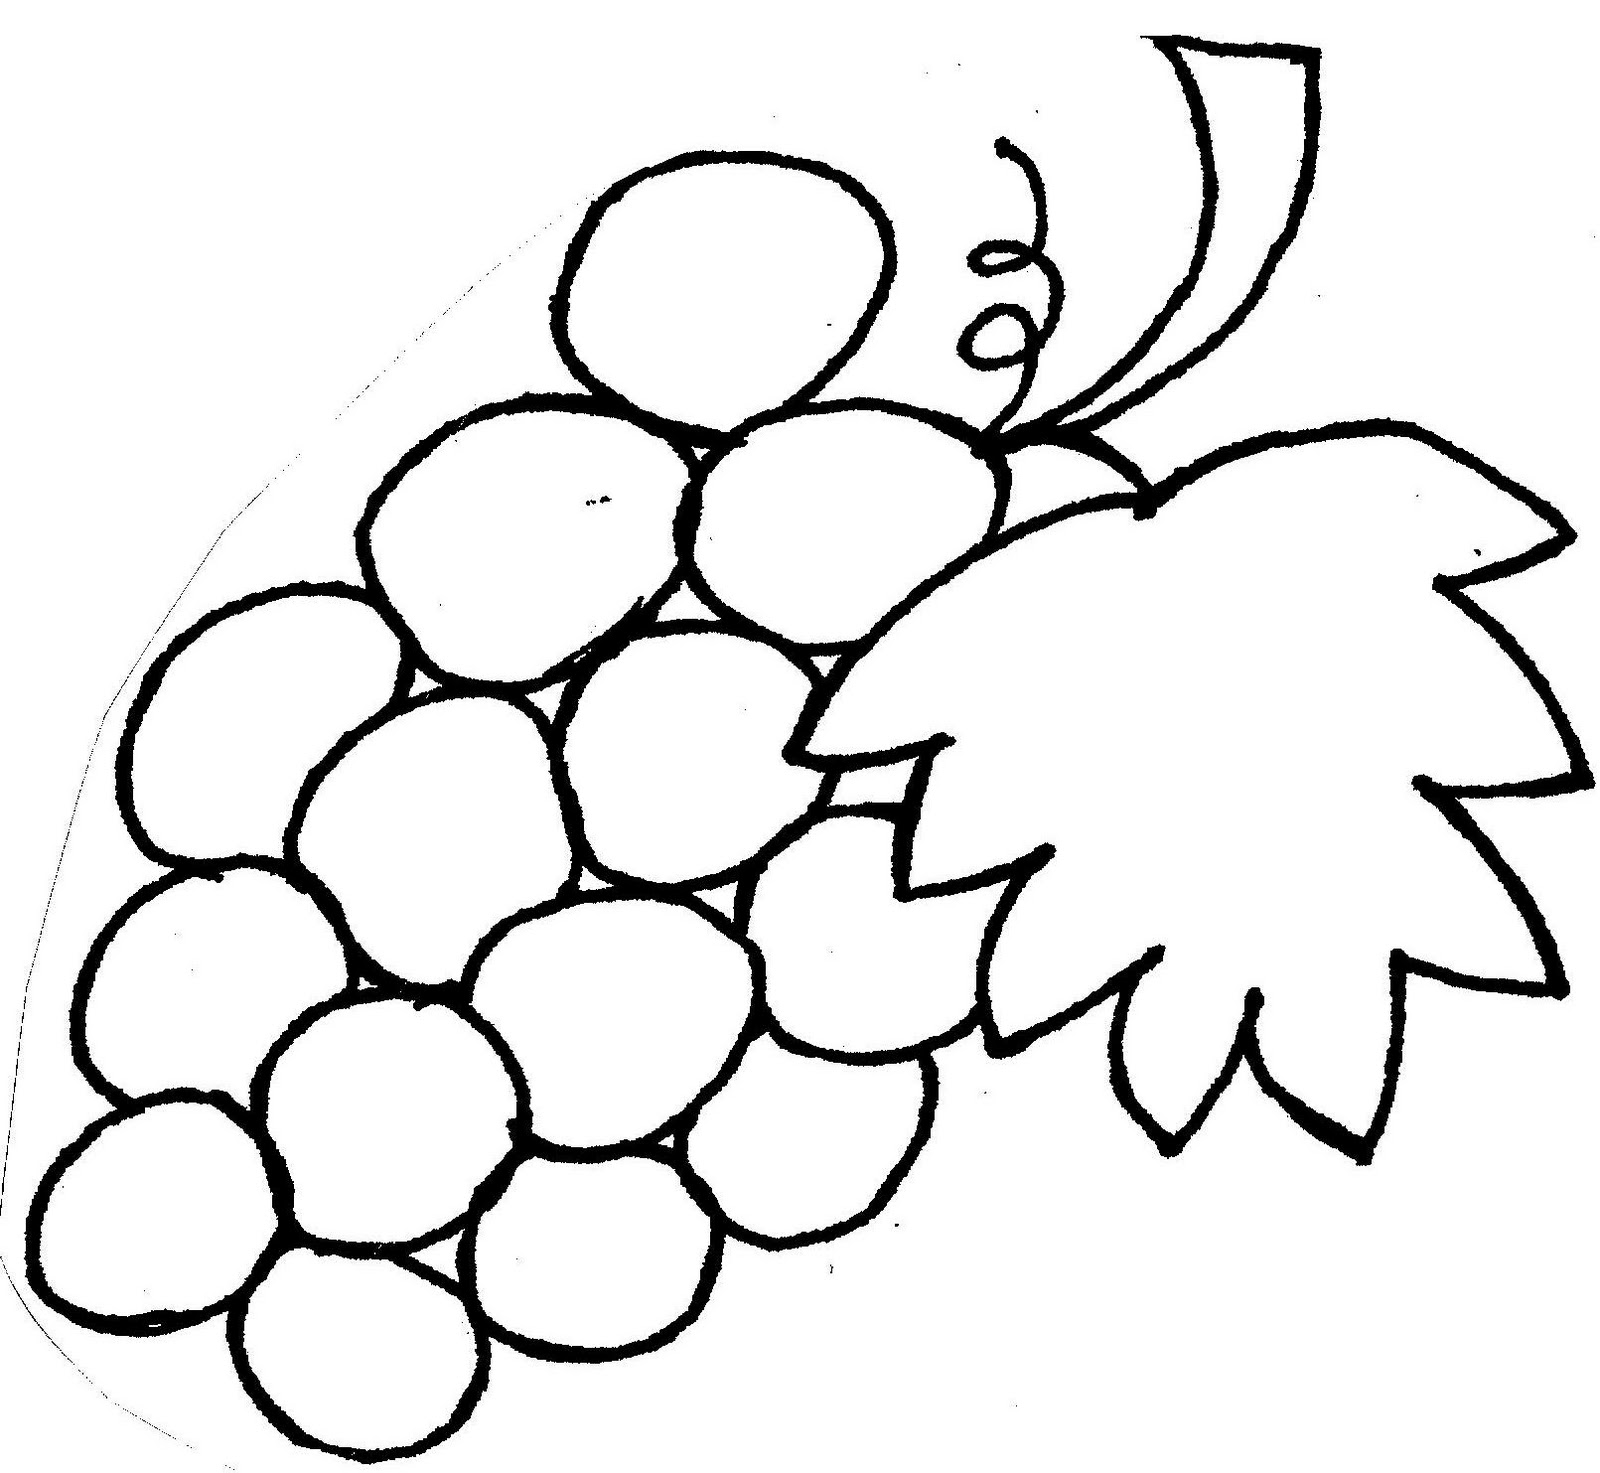 Childrens liturgy oct 8 2017 27th sunday ordinary time a use this graphic to create the mid sized banner symbol in grape colors and the full size black line coloring page for the offertory gift biocorpaavc